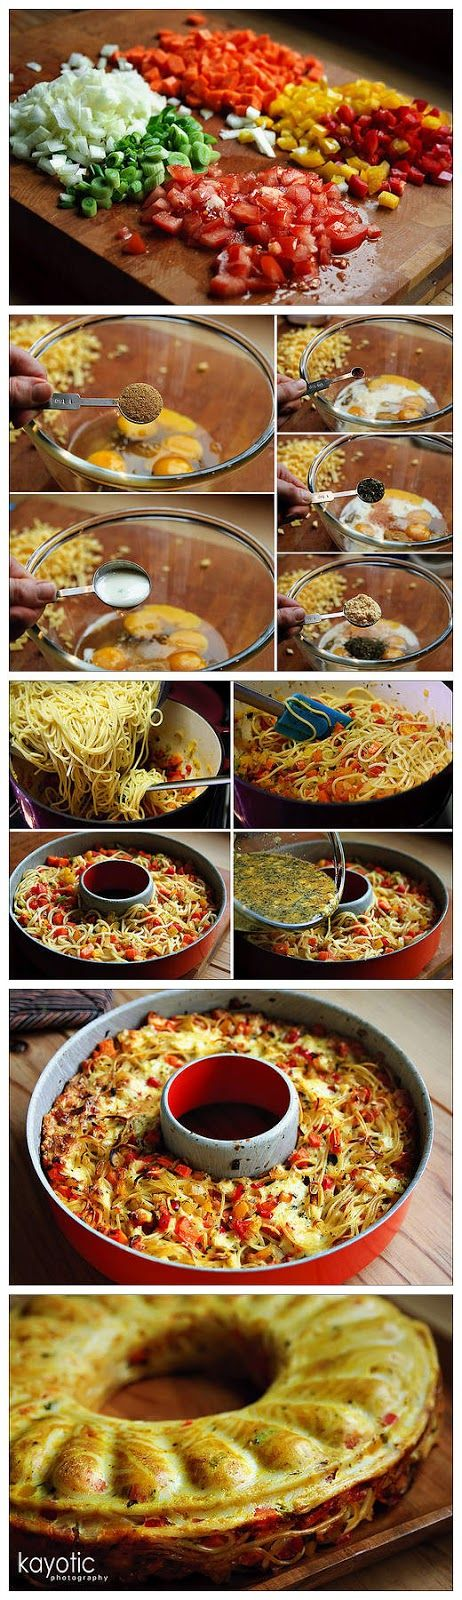 how to make spaghetti with bell peppers